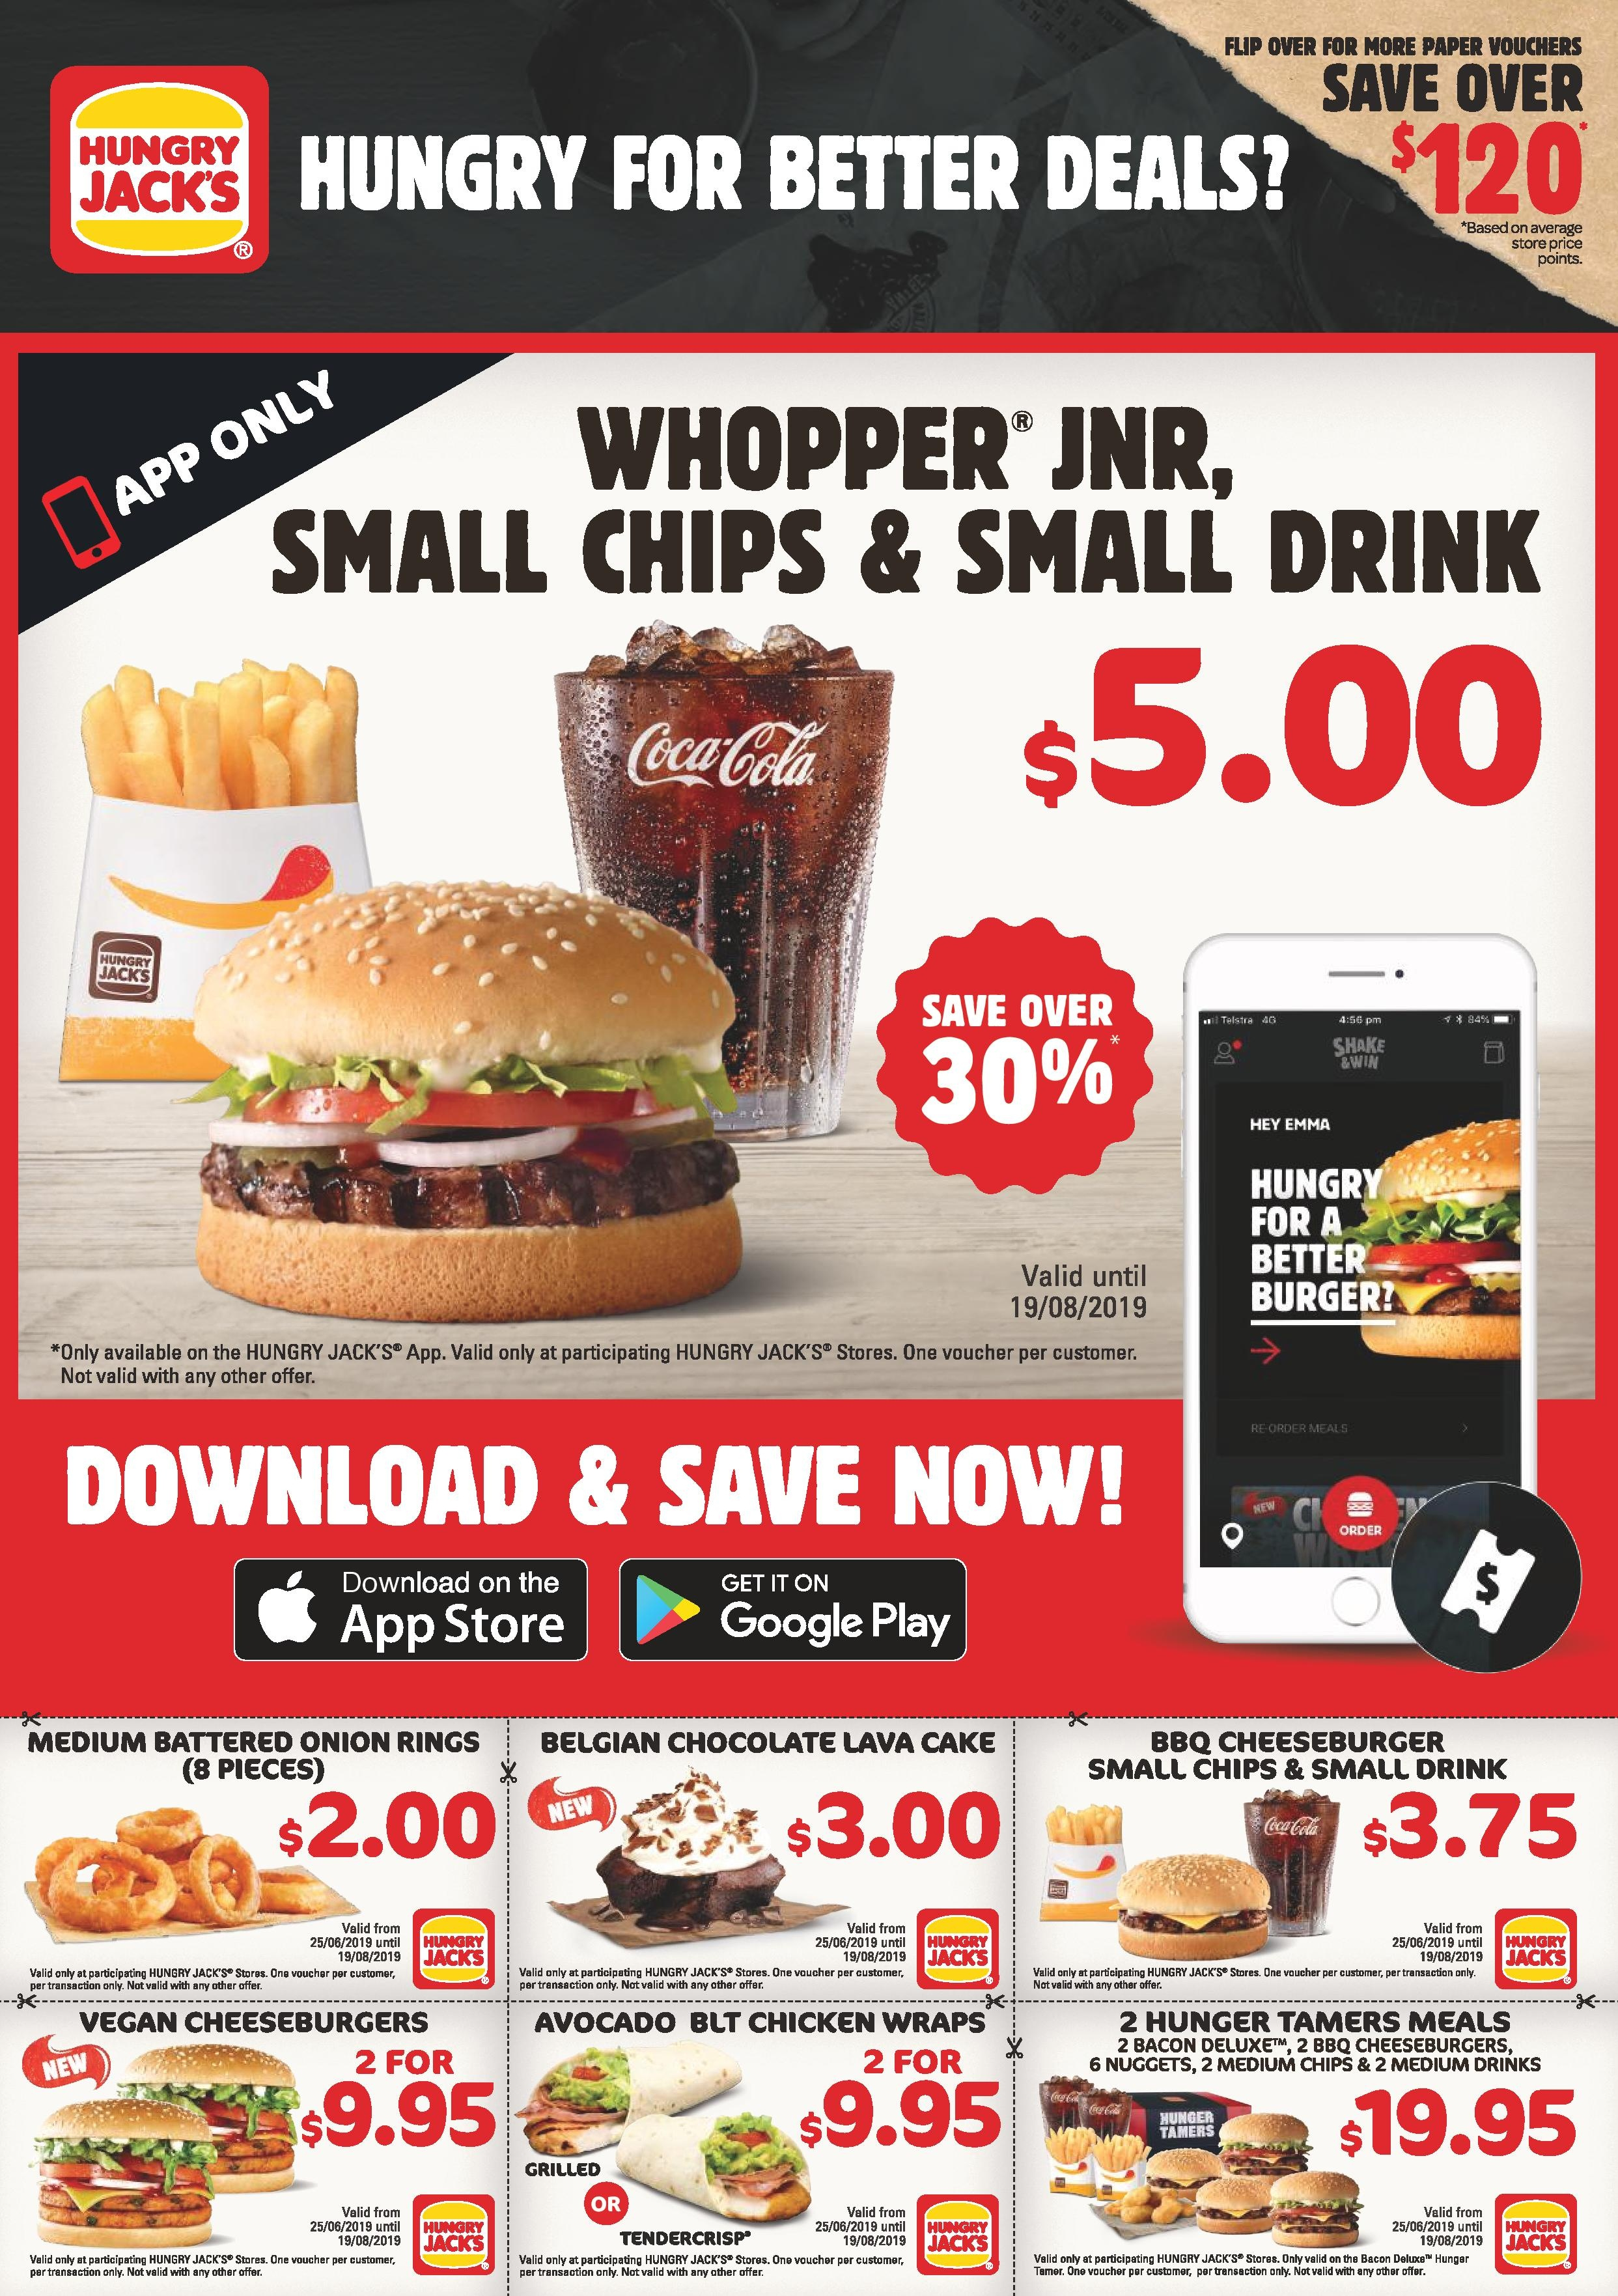 Hungry Jacks Vouchers / Coupons (June 2019) | Frugal Feeds - Free Online Printable Fast Food Coupons